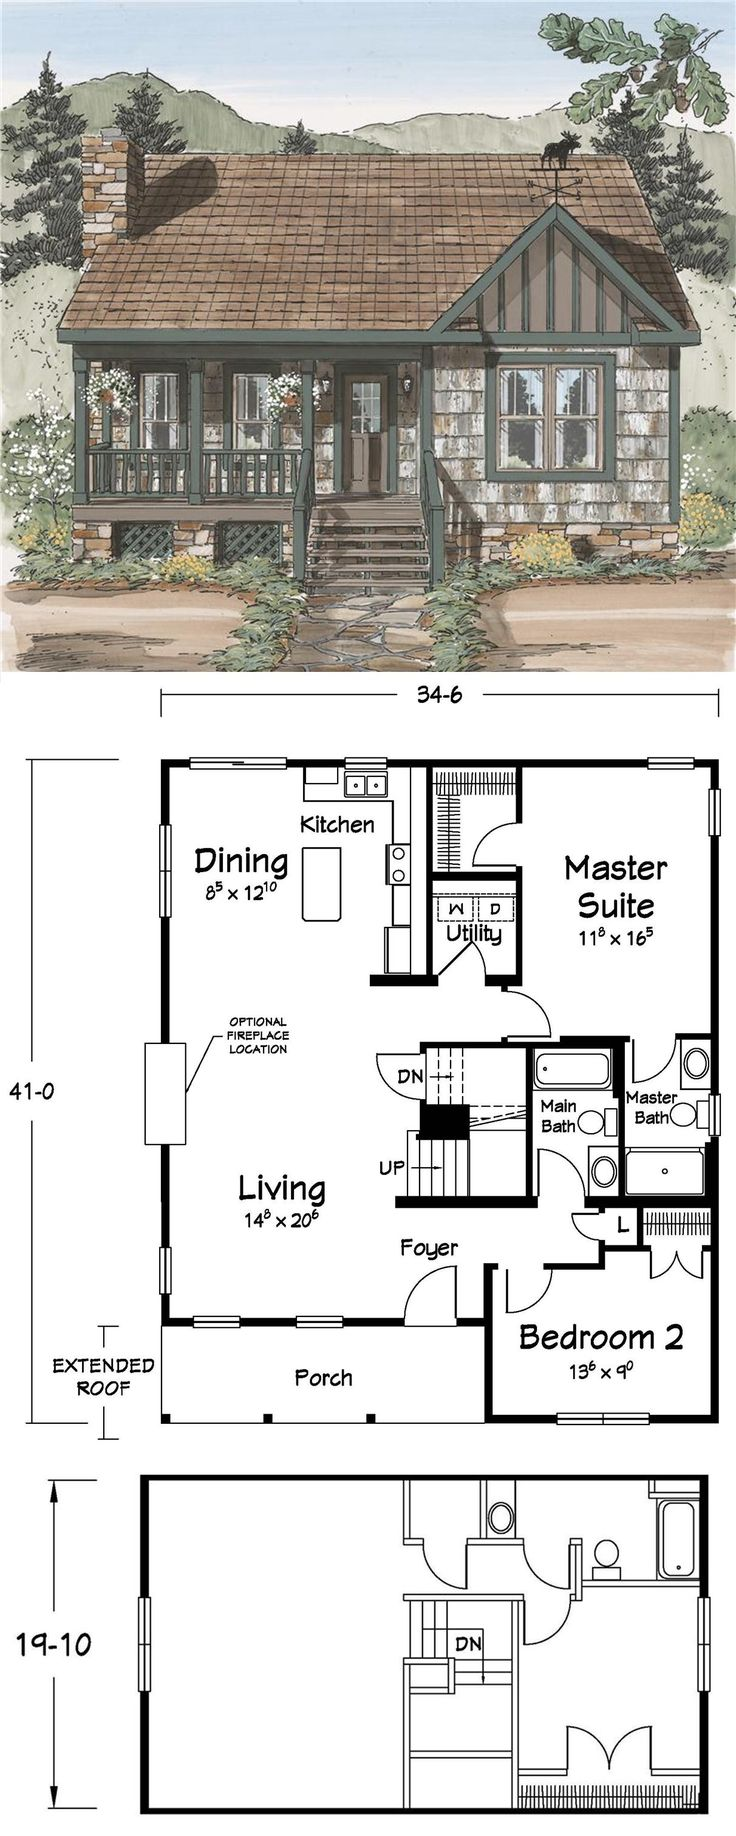 best 25 basement floor plans ideas on pinterest basement plans best 25 basement floor plans ideas on pinterest basement plans traditional interior doors and basement home office